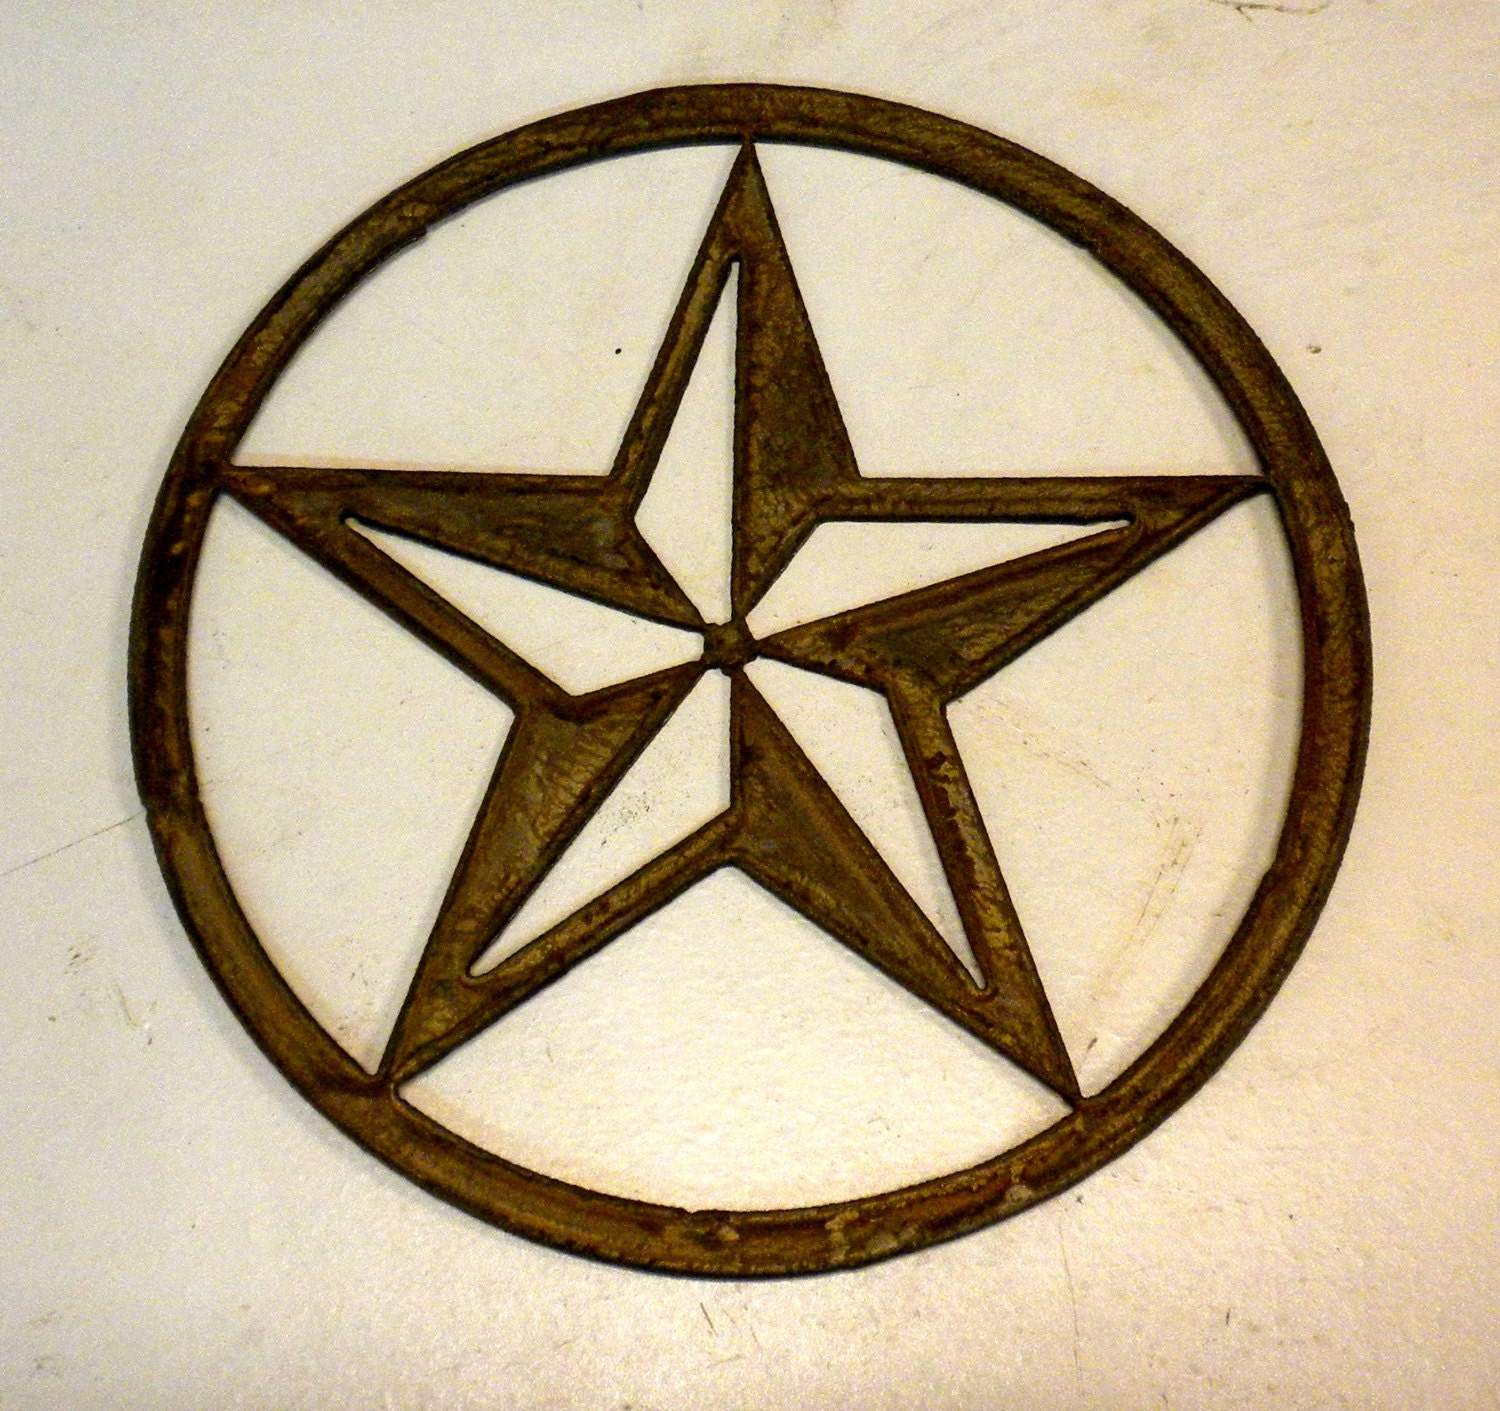 Vintage Star Wall Decor : Inch texas star rusty vintage antique y metal steel wall art